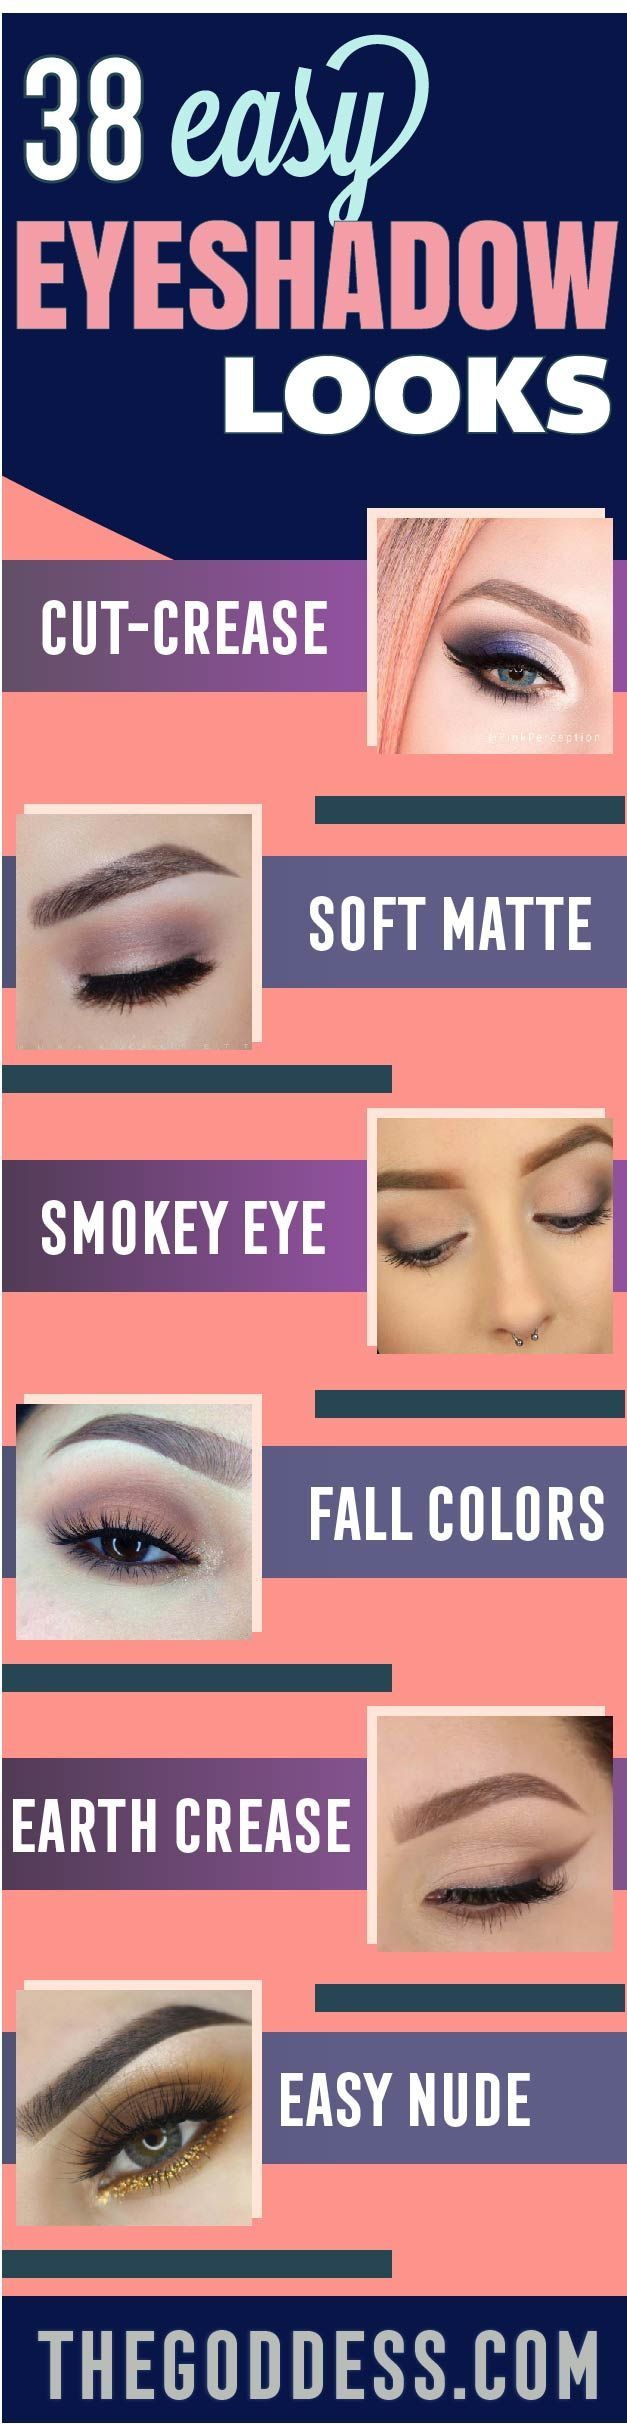 Easy Eye Shadow Looks for Beginners - Cool Eyeshadow Tutorials With Step by Step Instructions - Best Makeup Tutorial and Eye Shadow Ideas for Women and Teens - Matte, Smokey Eye, Looks for Work and Evening, School